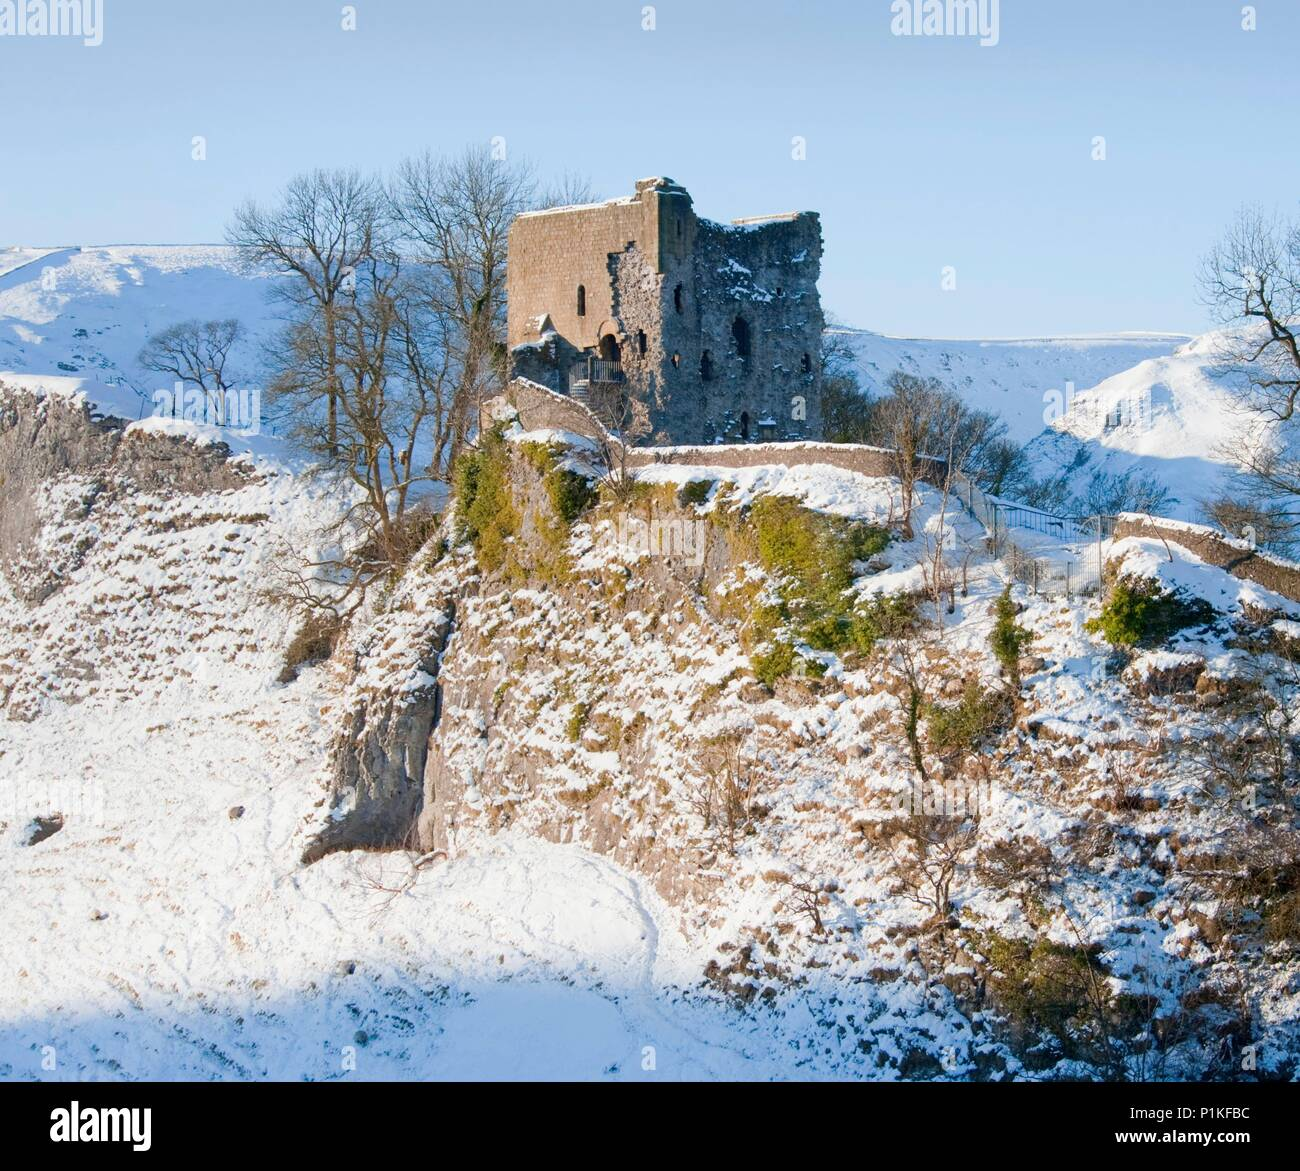 Peveril Castle, Derbyshire, c2000-c2017. View of the castle in the snow. - Stock Image